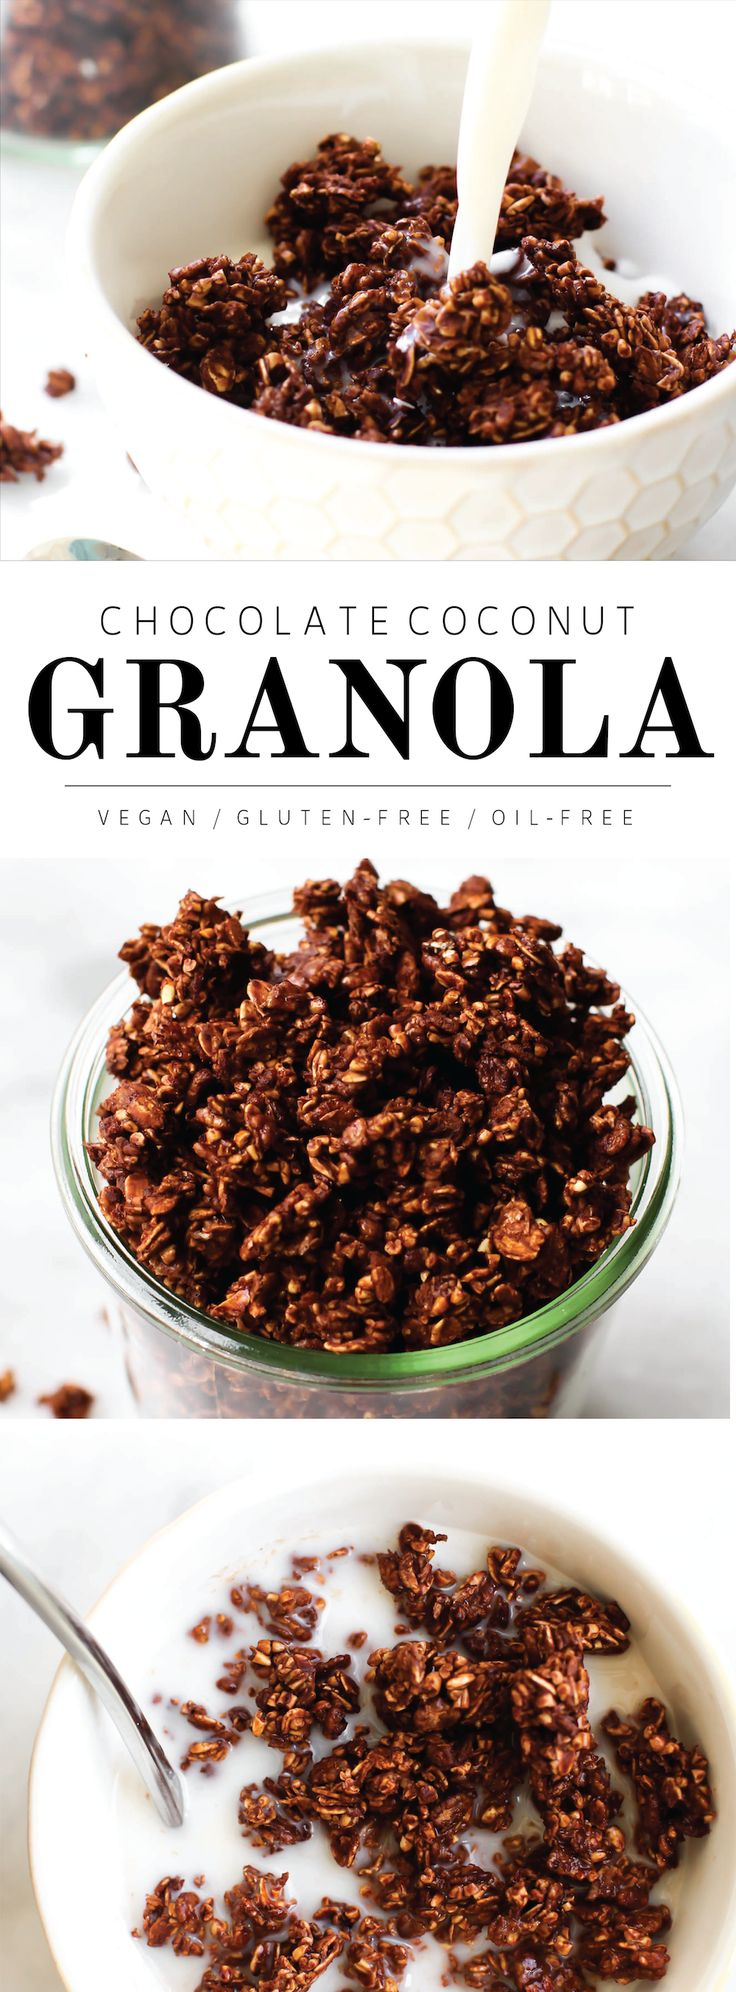 Oil-Free Chocolate Coconut Granola. The ultimate crunchy, cluster-packed sweet snack or cereal! Vegan  gluten-free. . . . . . der Blog für den Gentleman - www.thegentlemanclub.de/blog